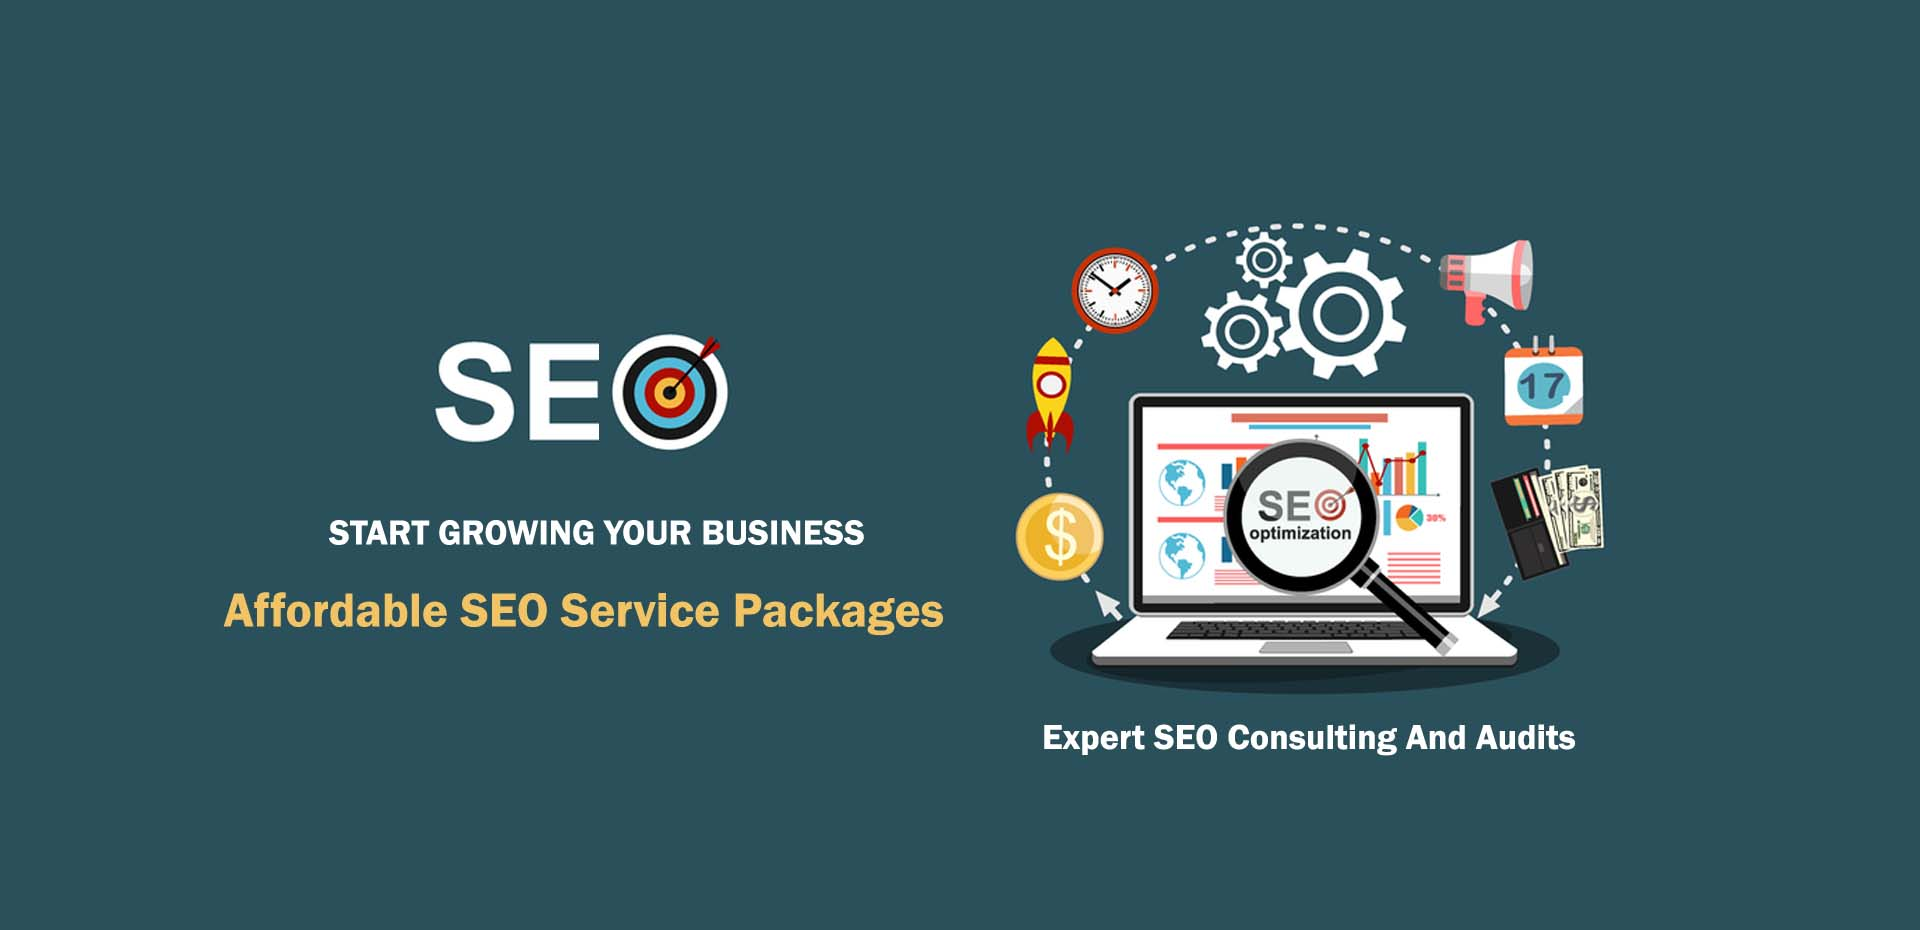 SEO Services In Karachi Pakistan